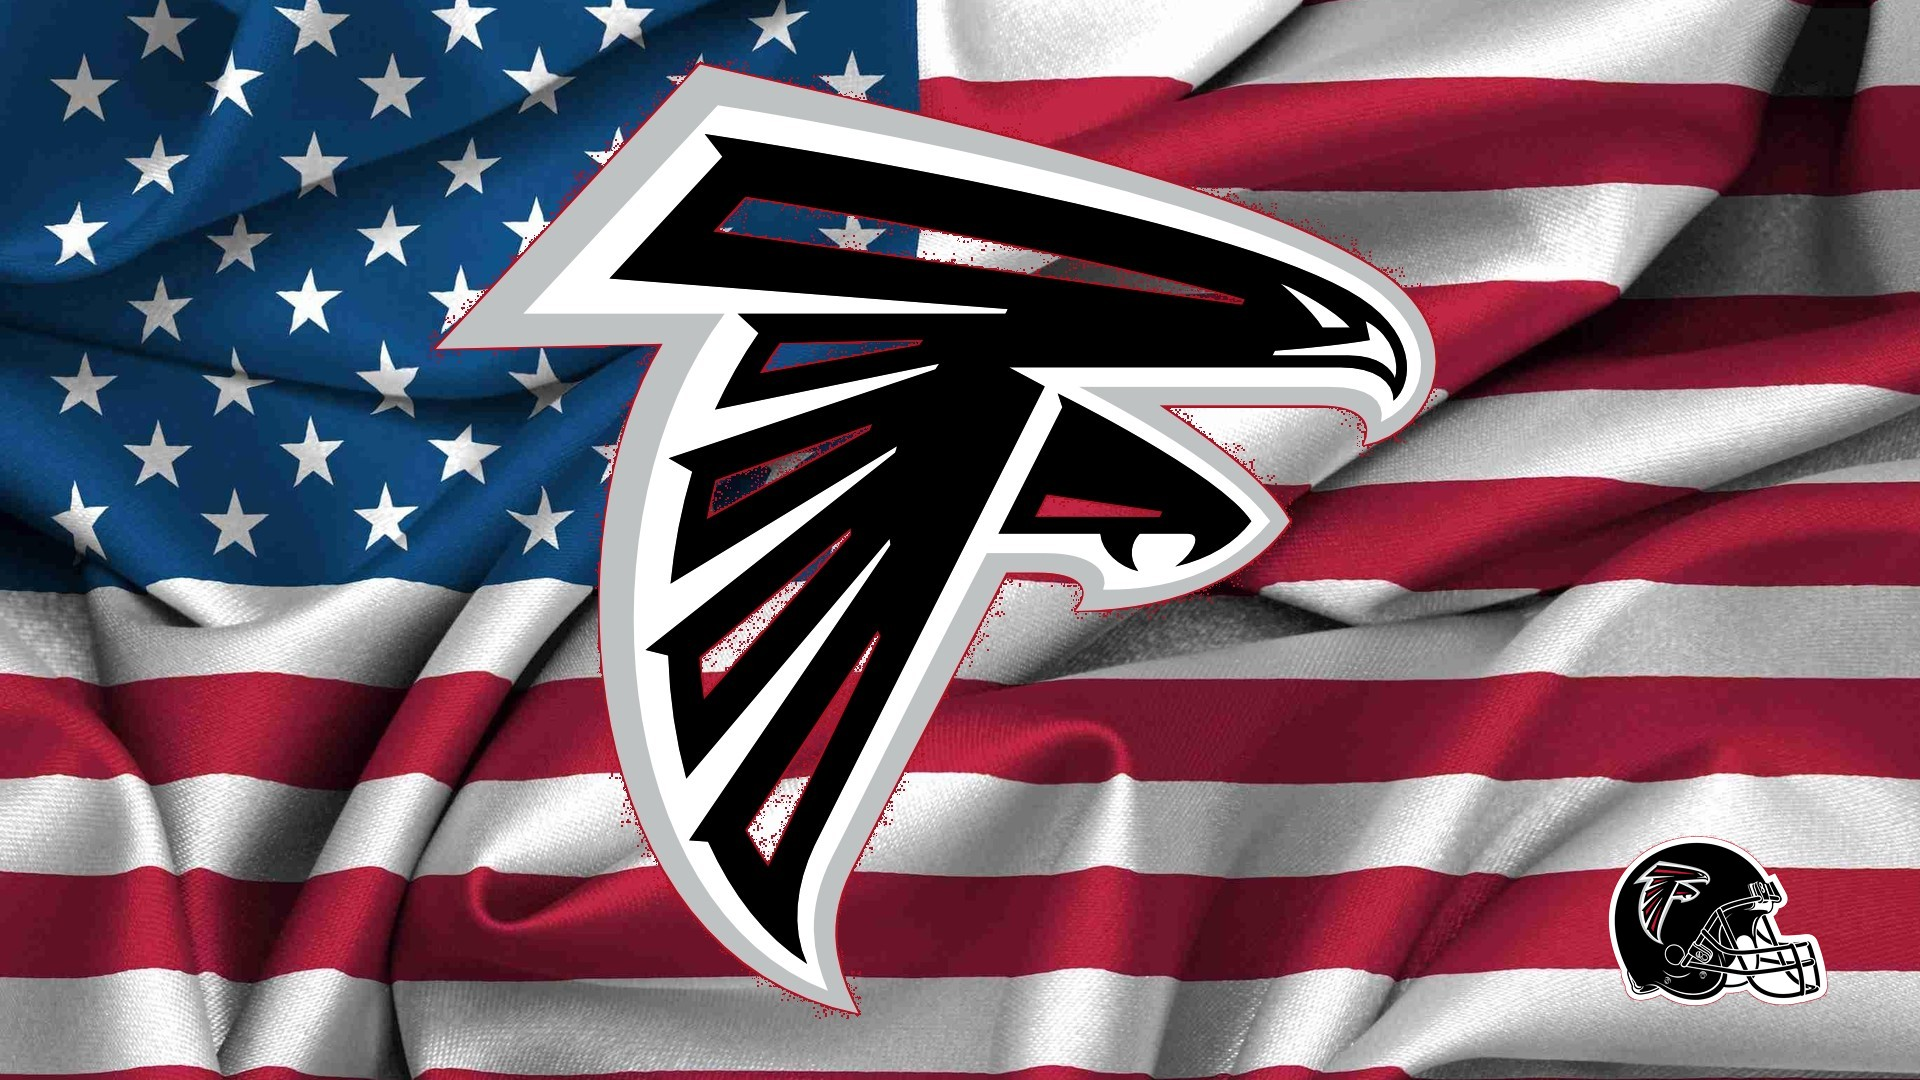 Atlanta Falcons HD Wallpapers - WallpaperSafari